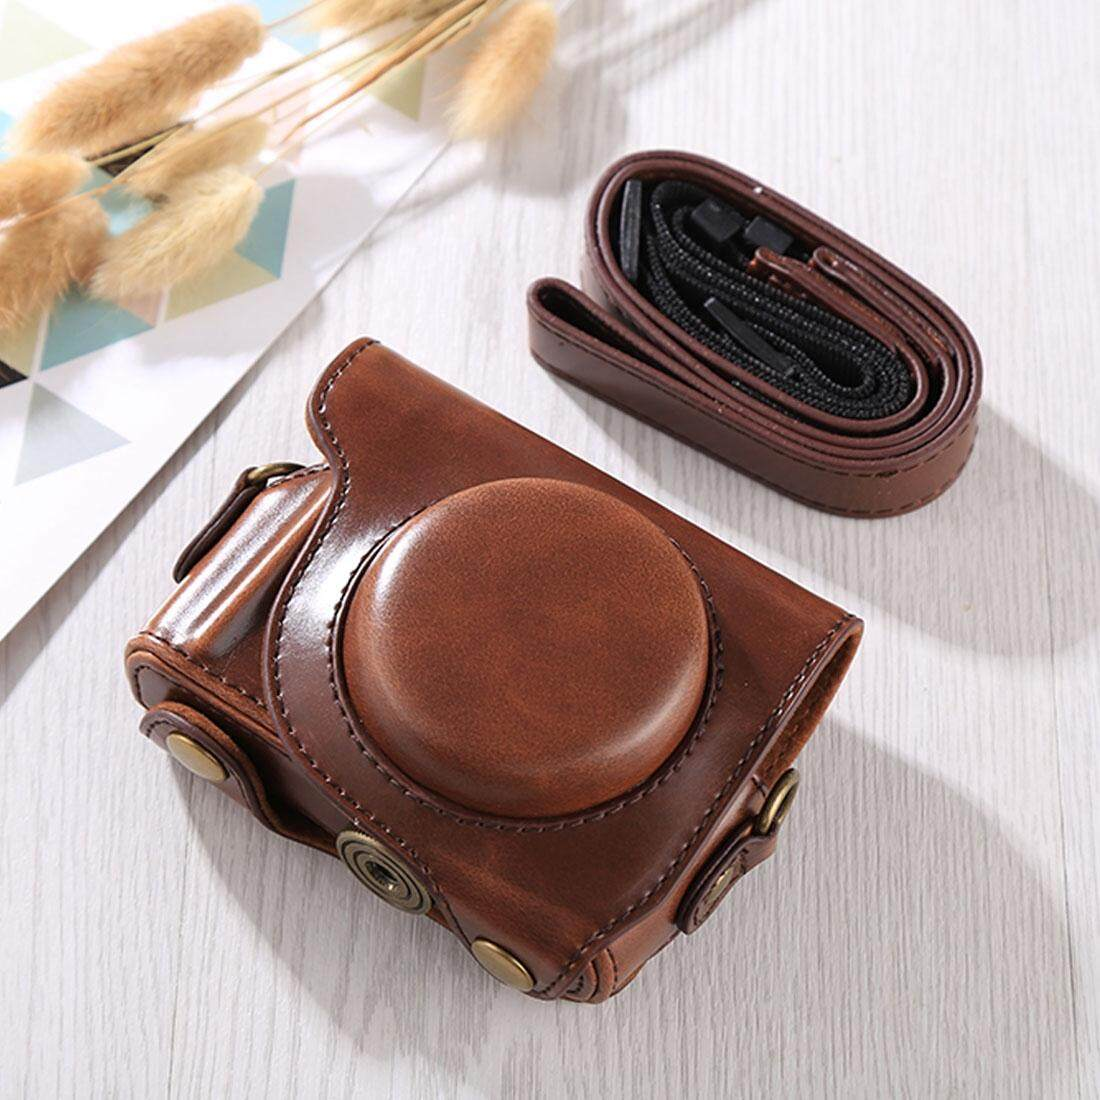 Full Body Camera PU Leather Case Bag with Strap for Canon G9X / G9X II (Coffee)